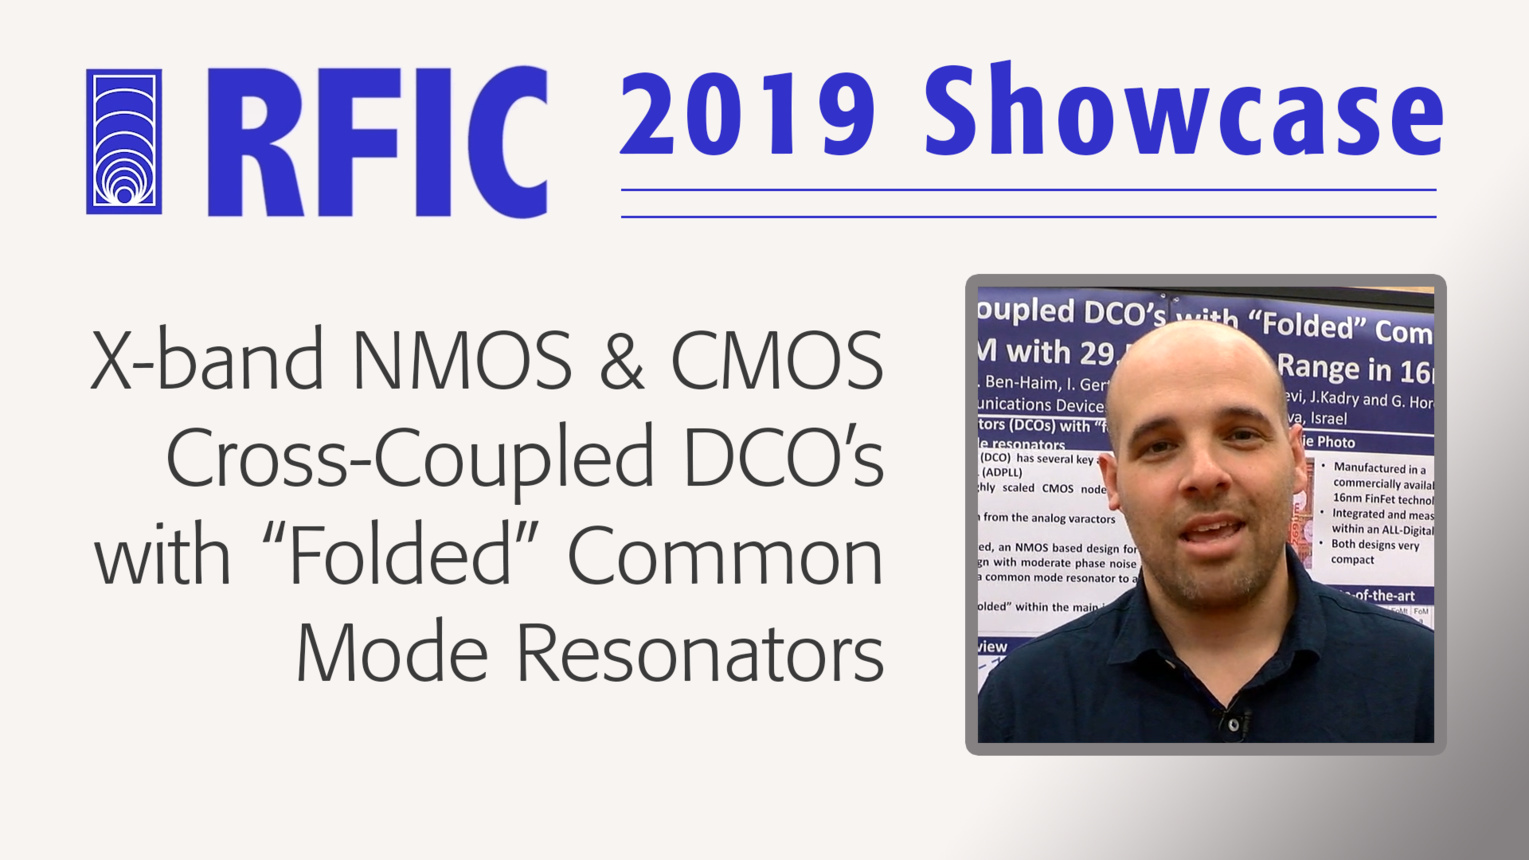 "X-band NMOS & CMOS Cross-Coupled DCO's with ""Folded"" Common Mode Resonators - Run Levinger - RFIC 2019 Showcase"